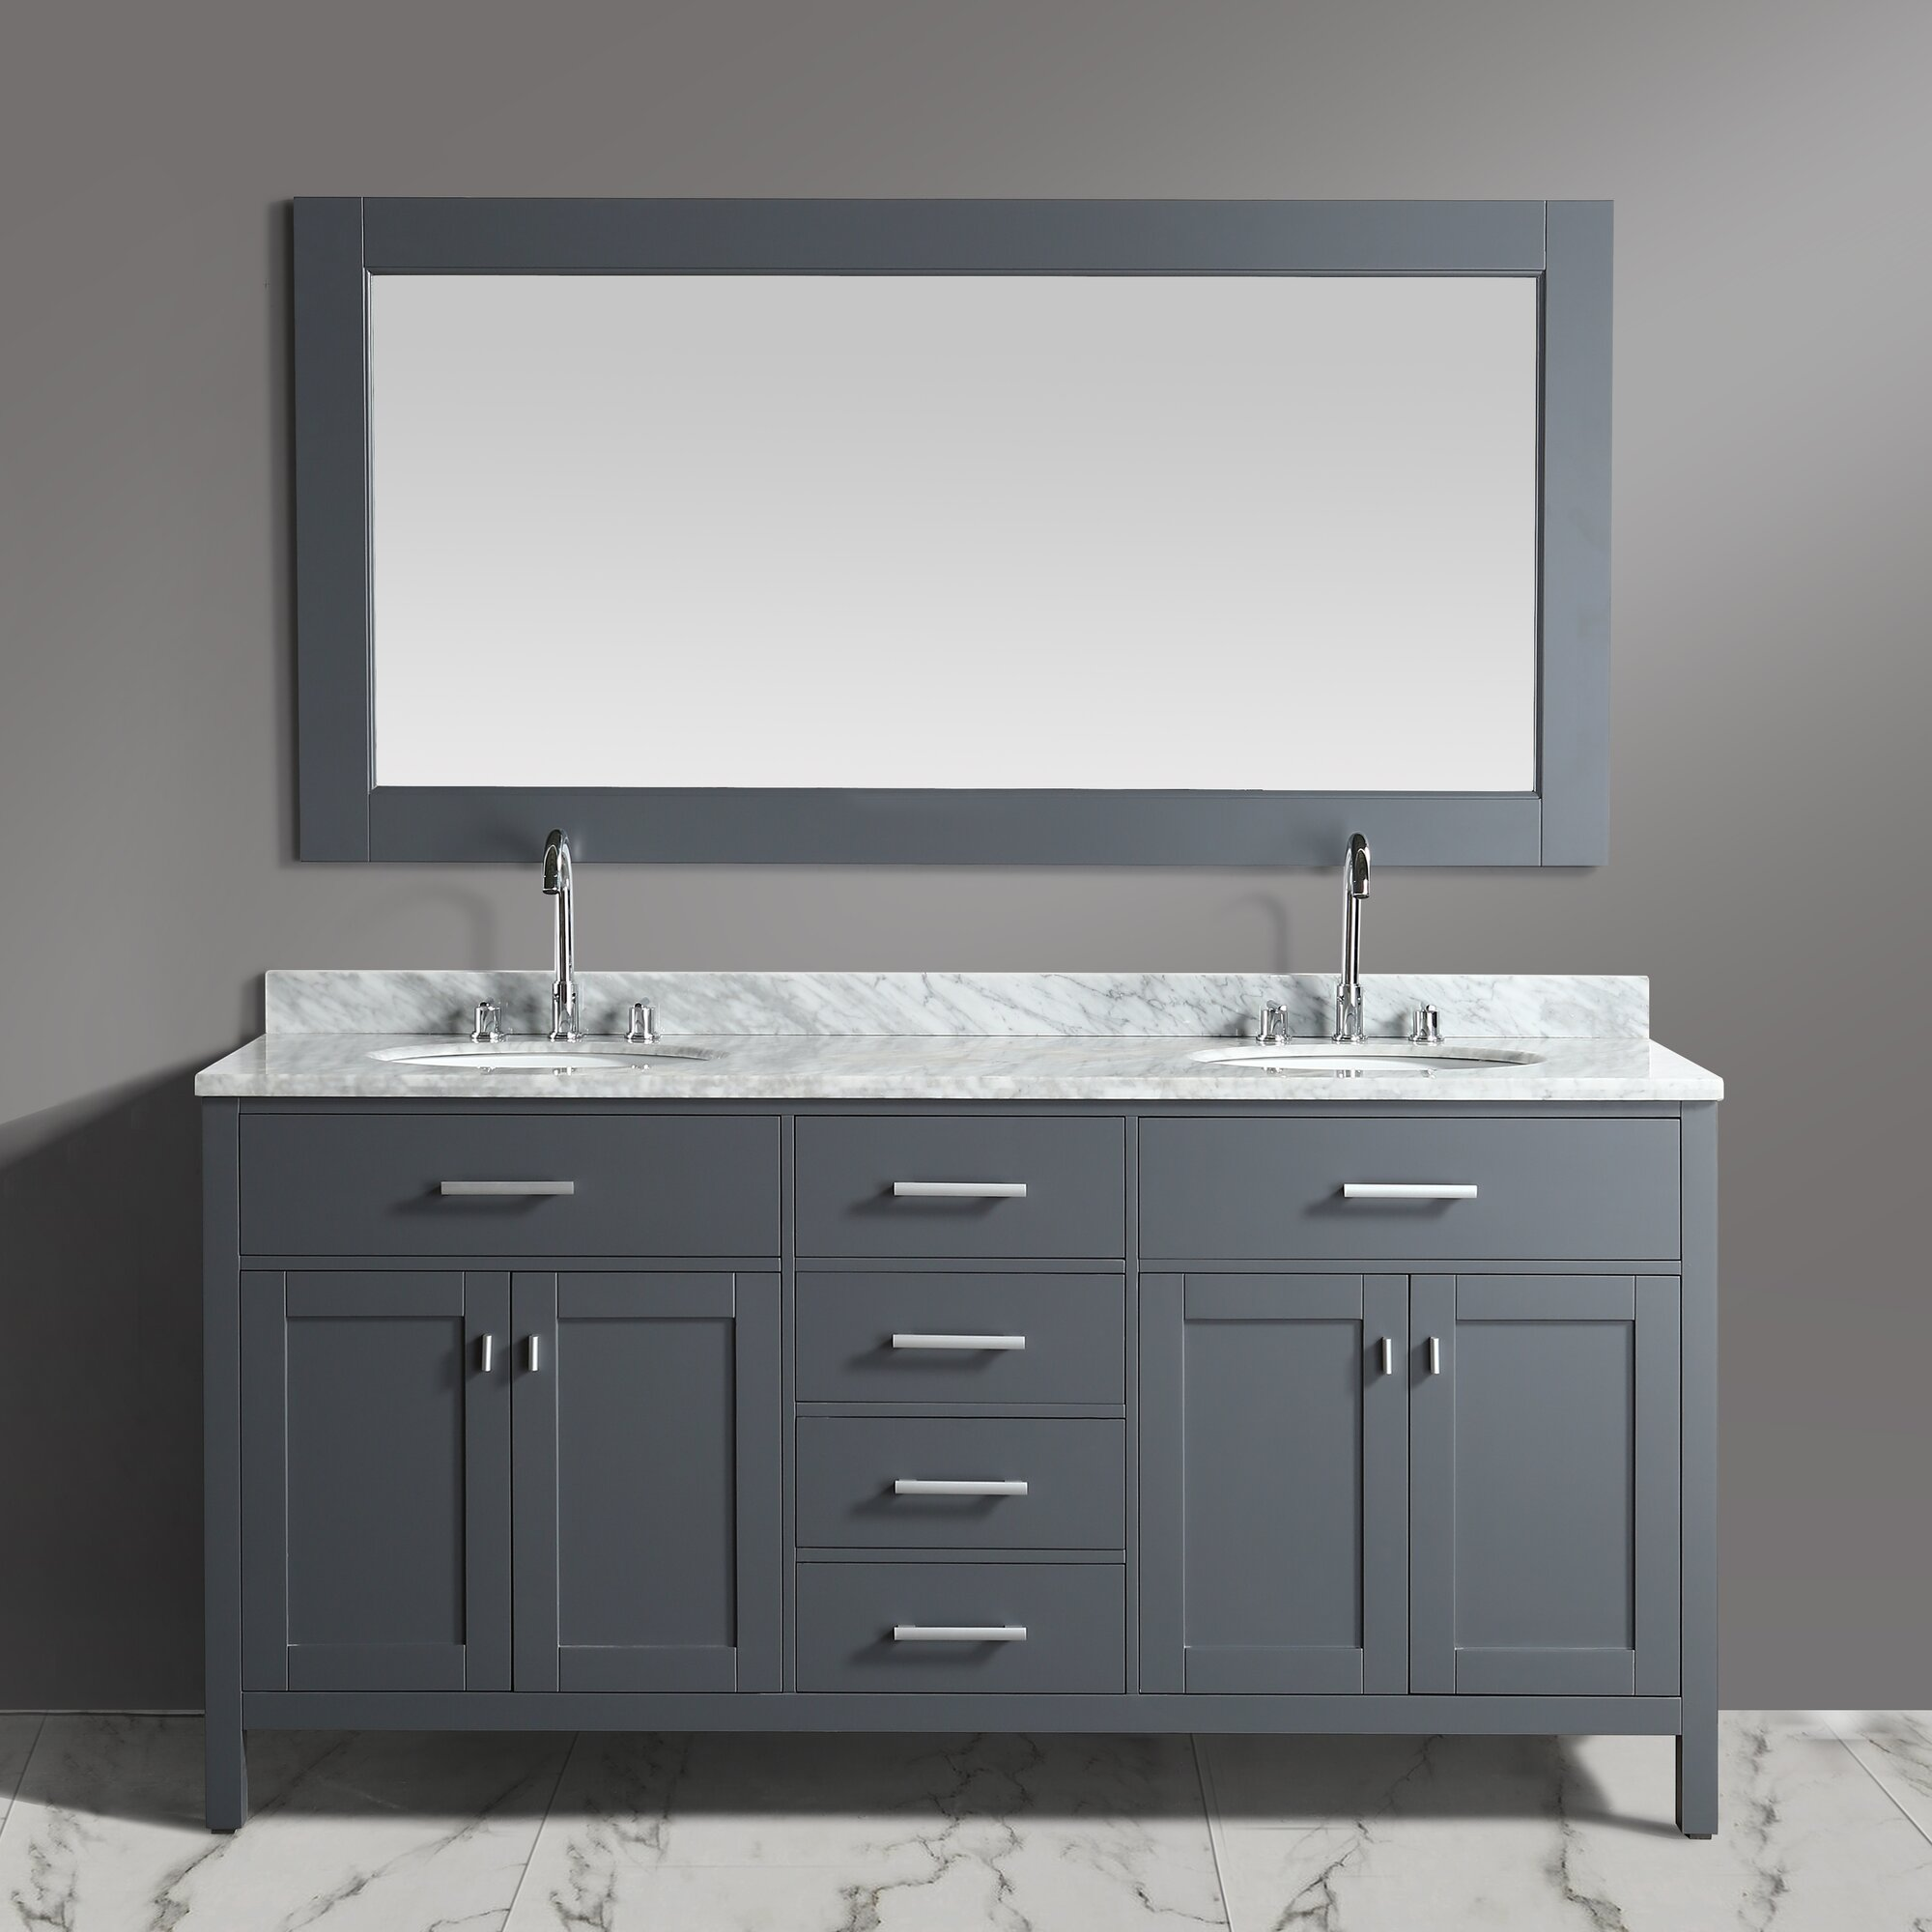 Dcor Design London Stanmark 72 Double Bathroom Vanity Set With Mirror